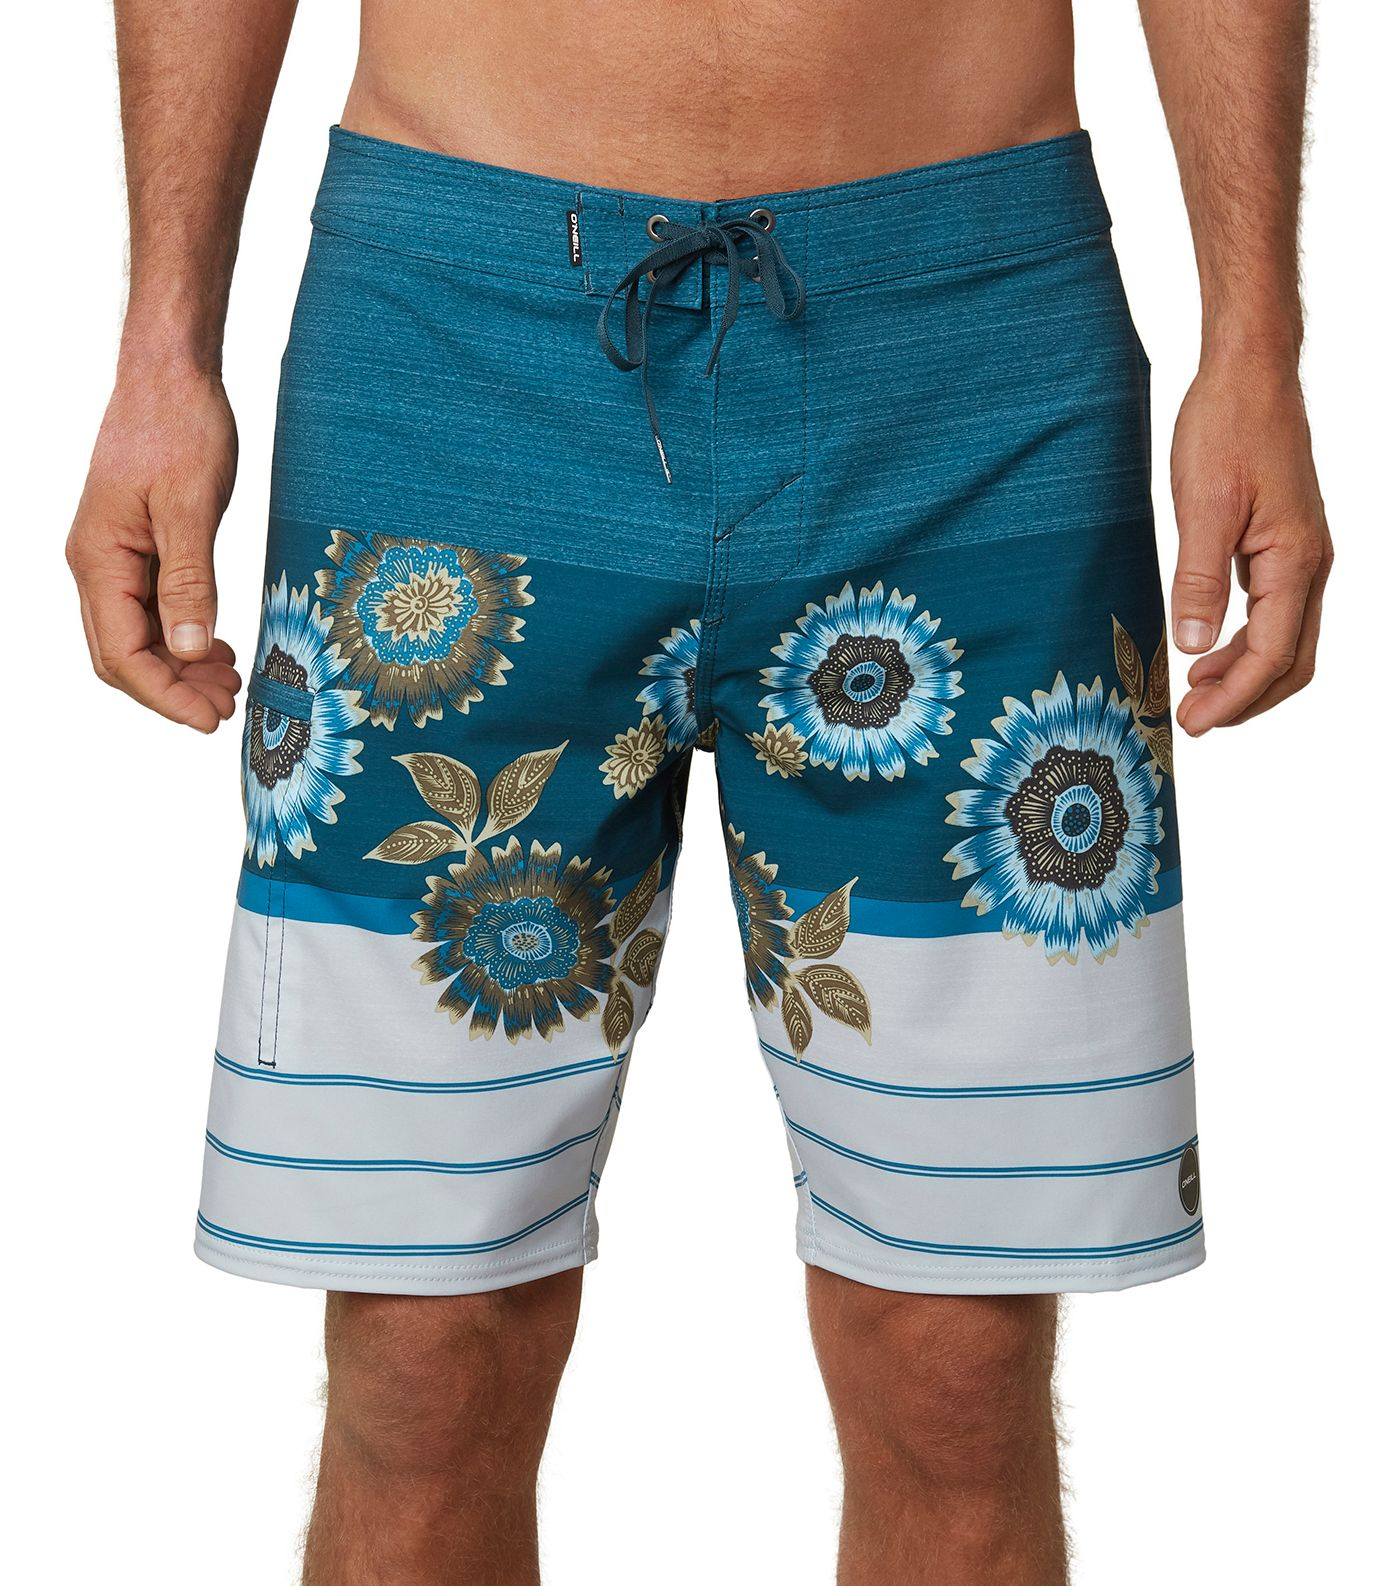 O'Neill Men's Hyperfreak Heist Print Board Shorts